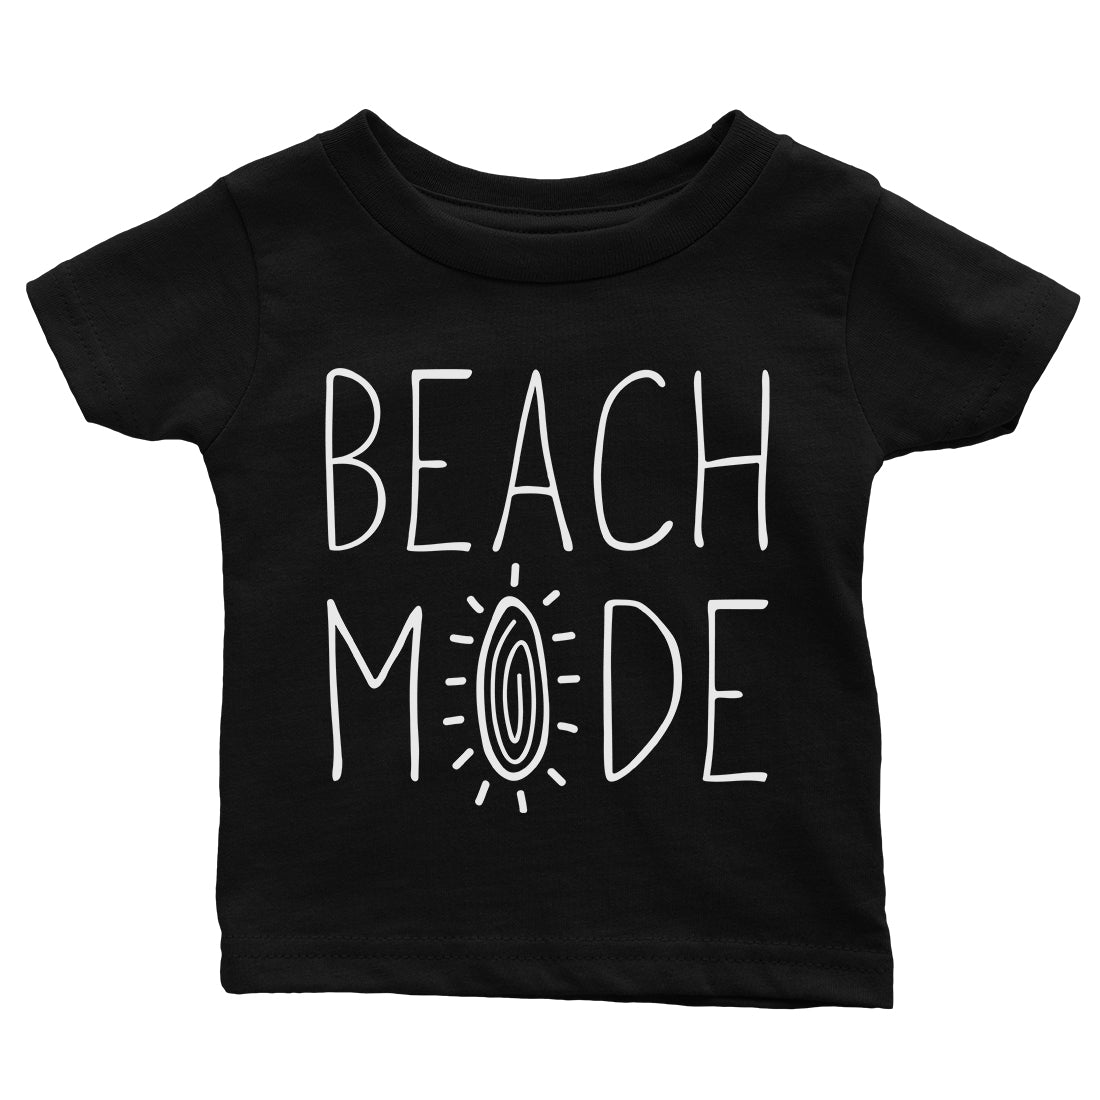 2f900f03f 365 Printing Beach Mode Baby Graphic TShirt Gift For Baby Shower Cute Infant  Tee